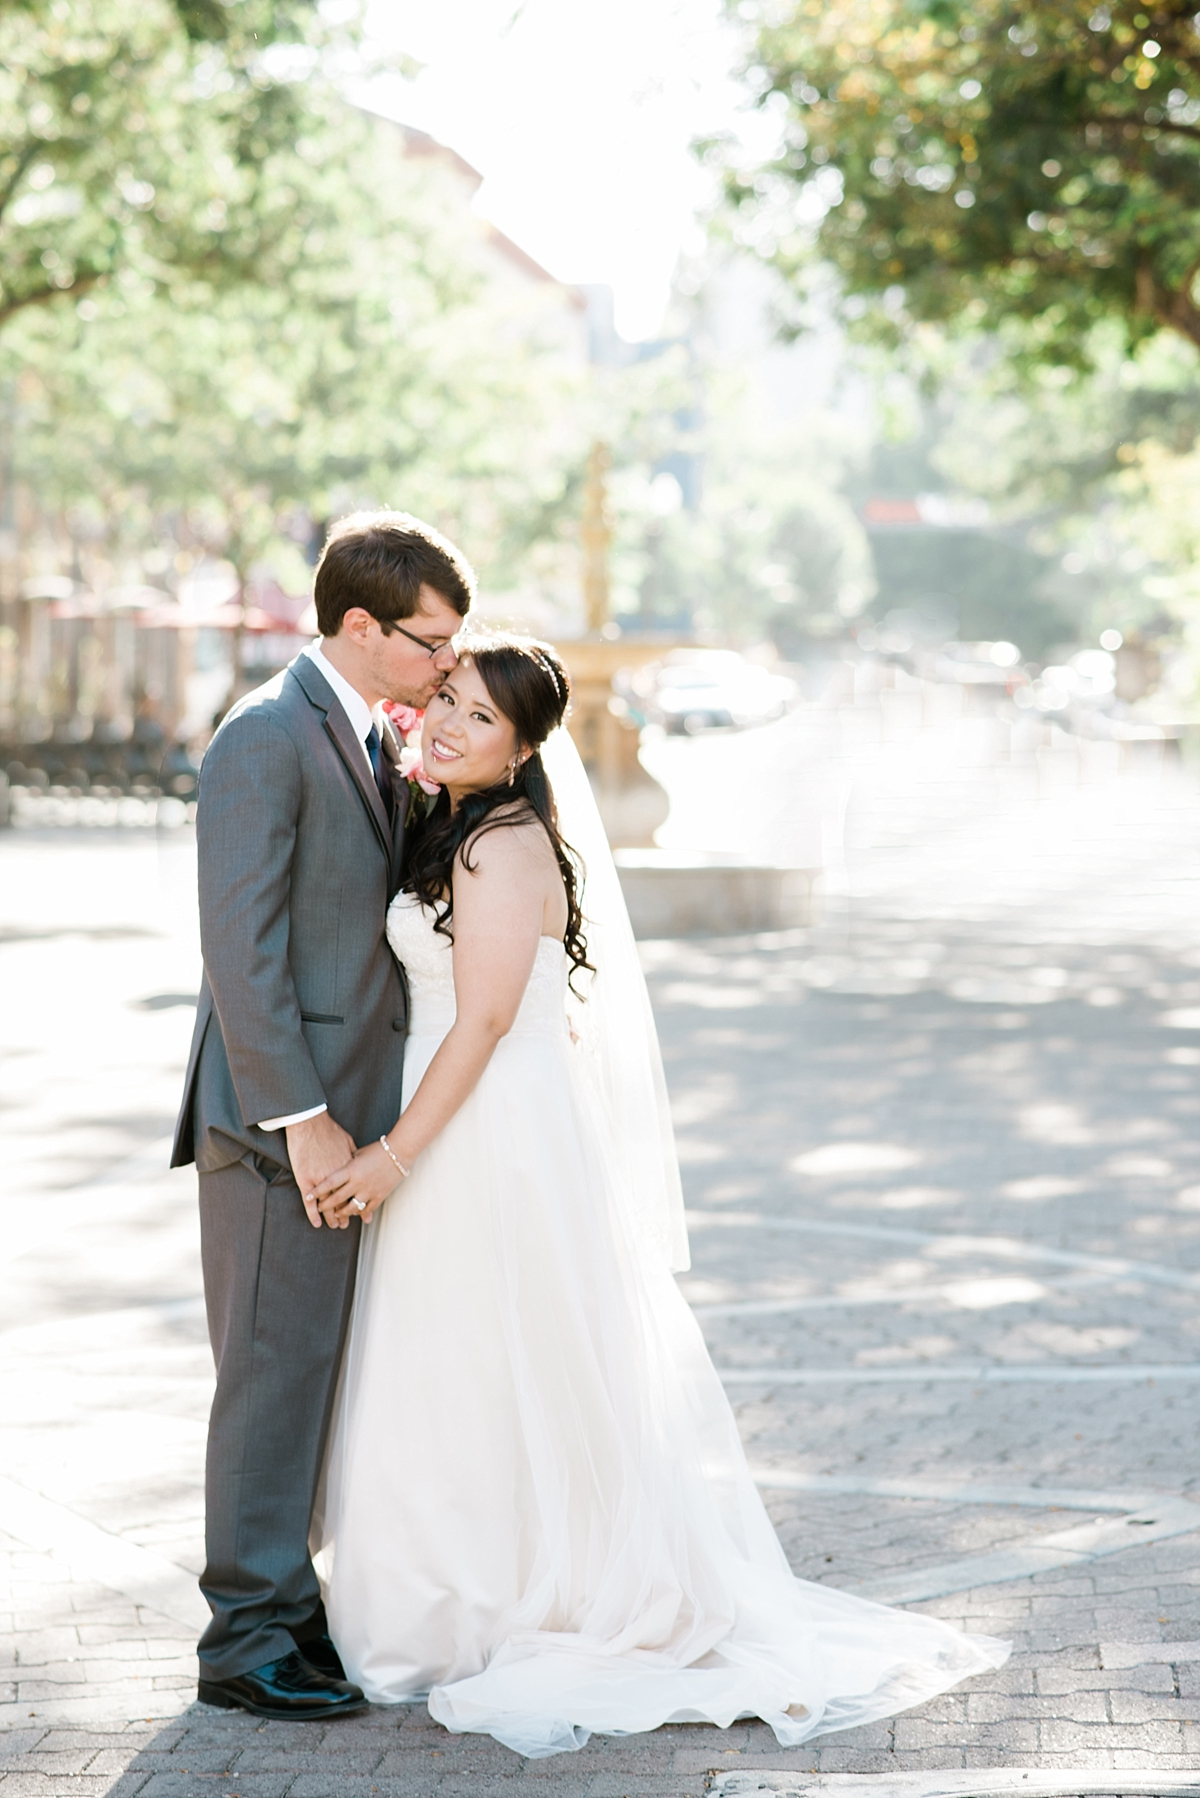 the-estate-on-second-wedding-photography-carissa-woo-photography_0063